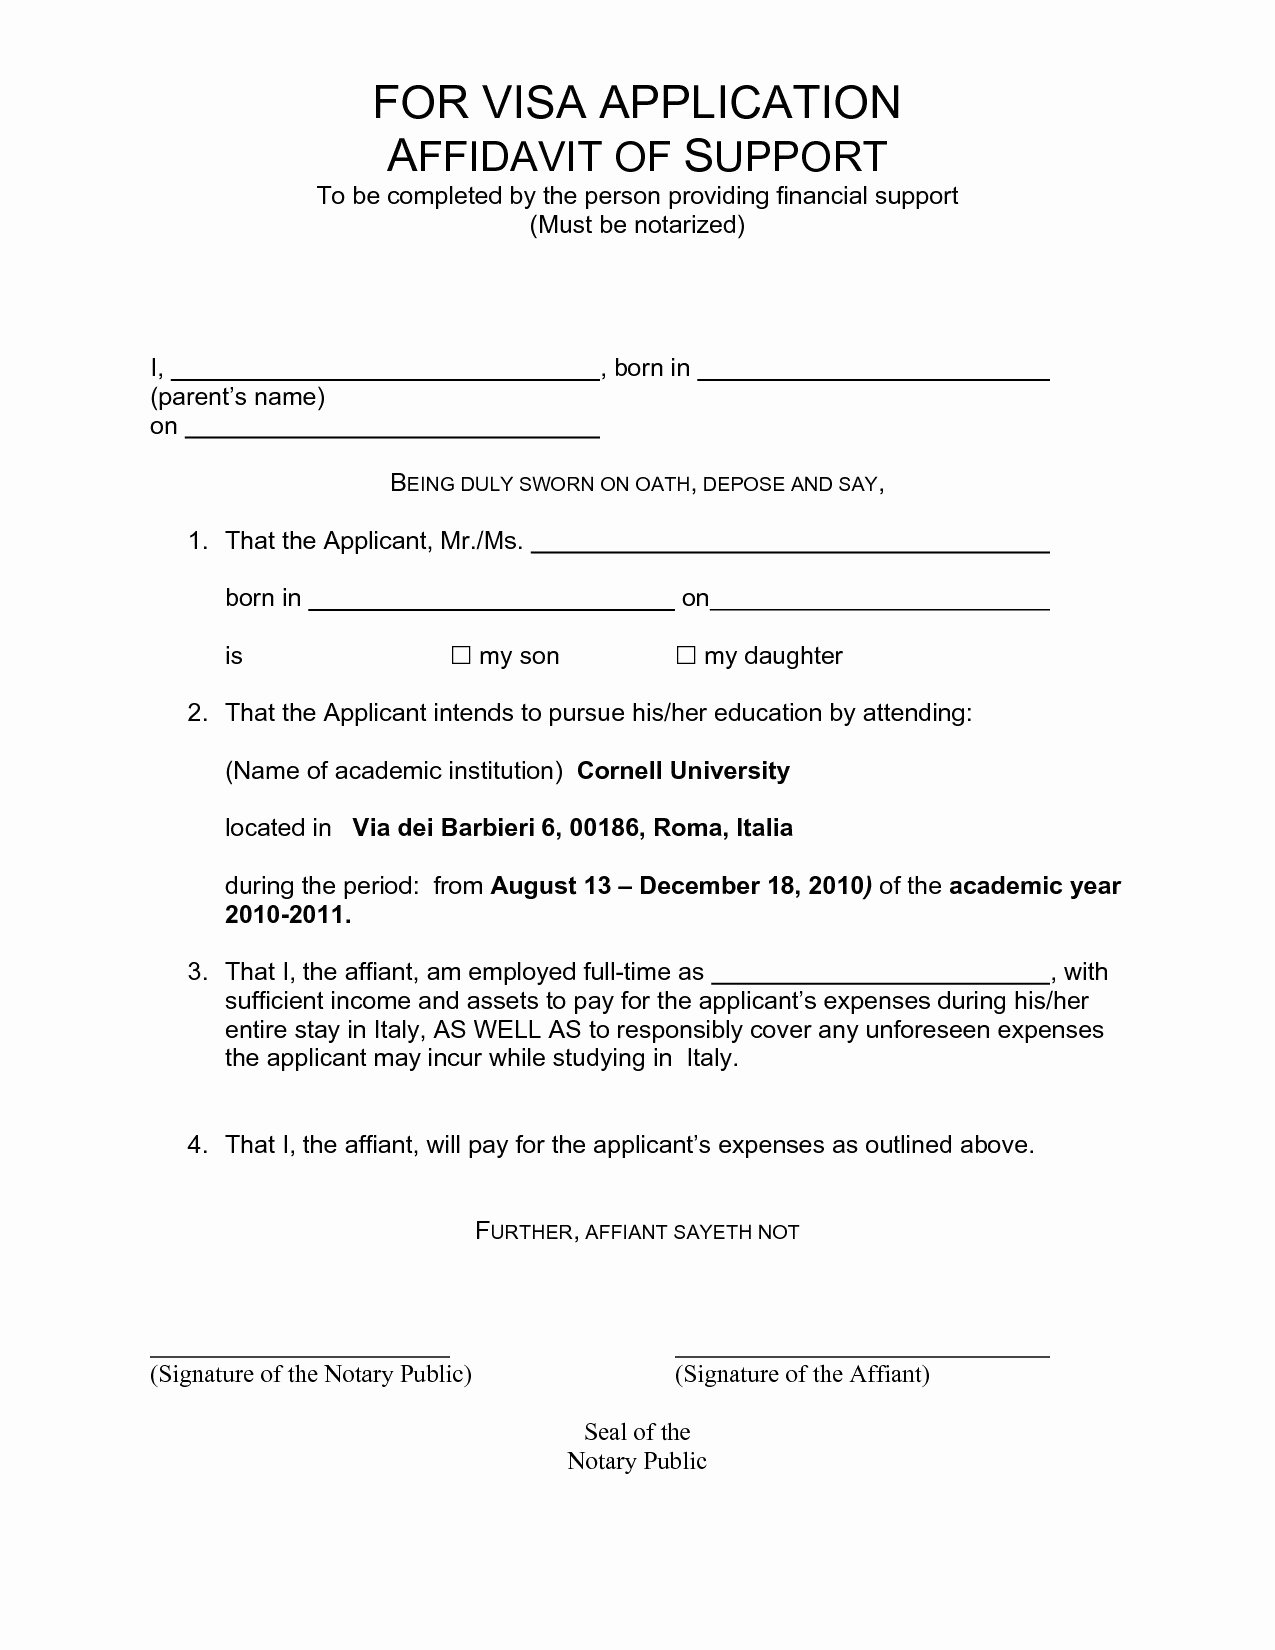 Affidavit Of Support Example Letters New Affidavit Support Template Letter Bluemooncatering